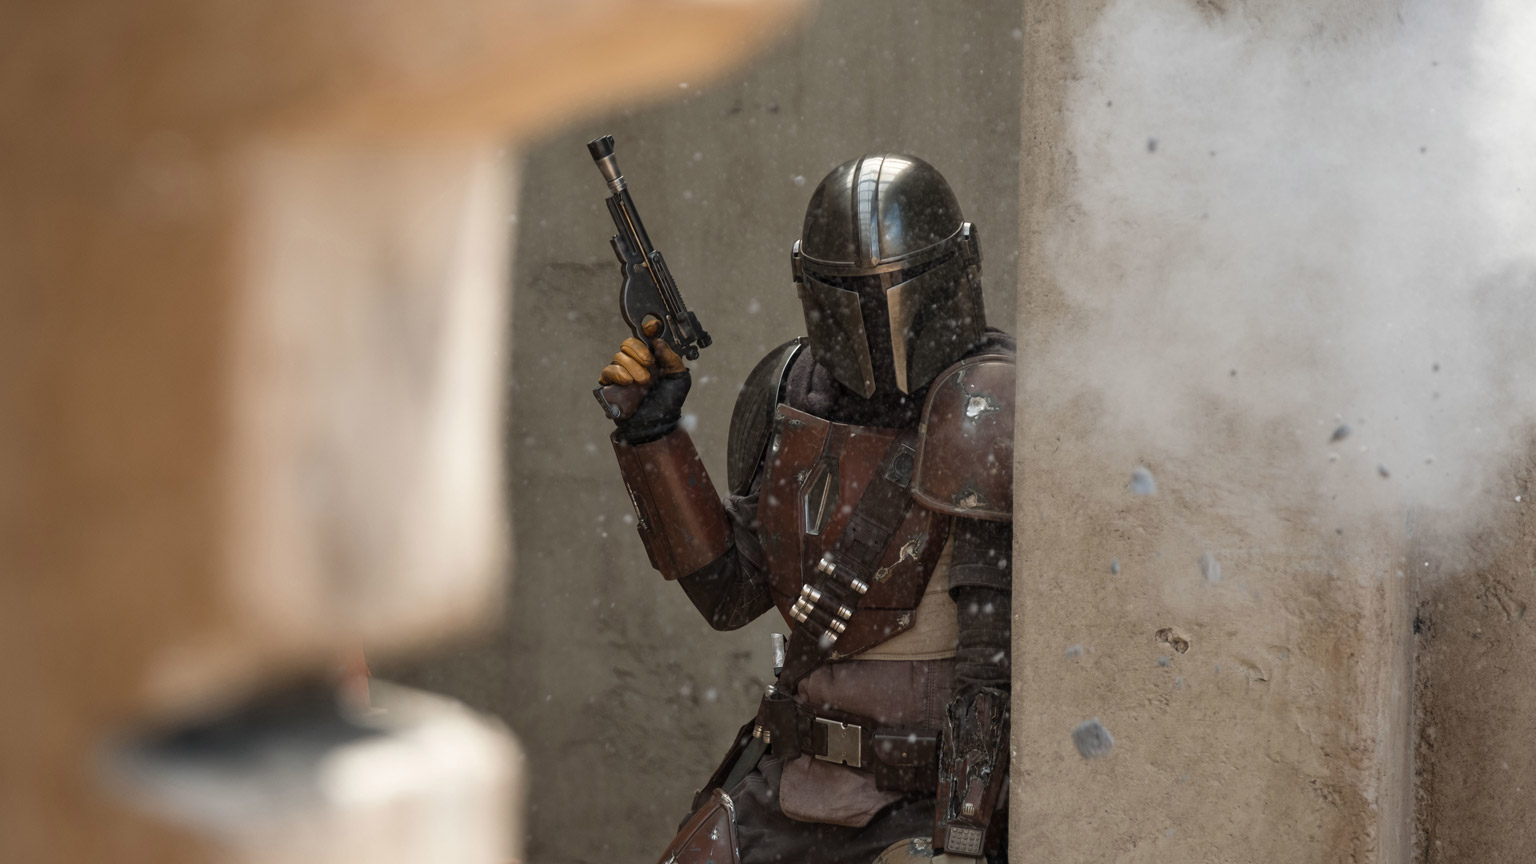 The Mandalorian : on en sait plus sur la prochaine série Star Wars